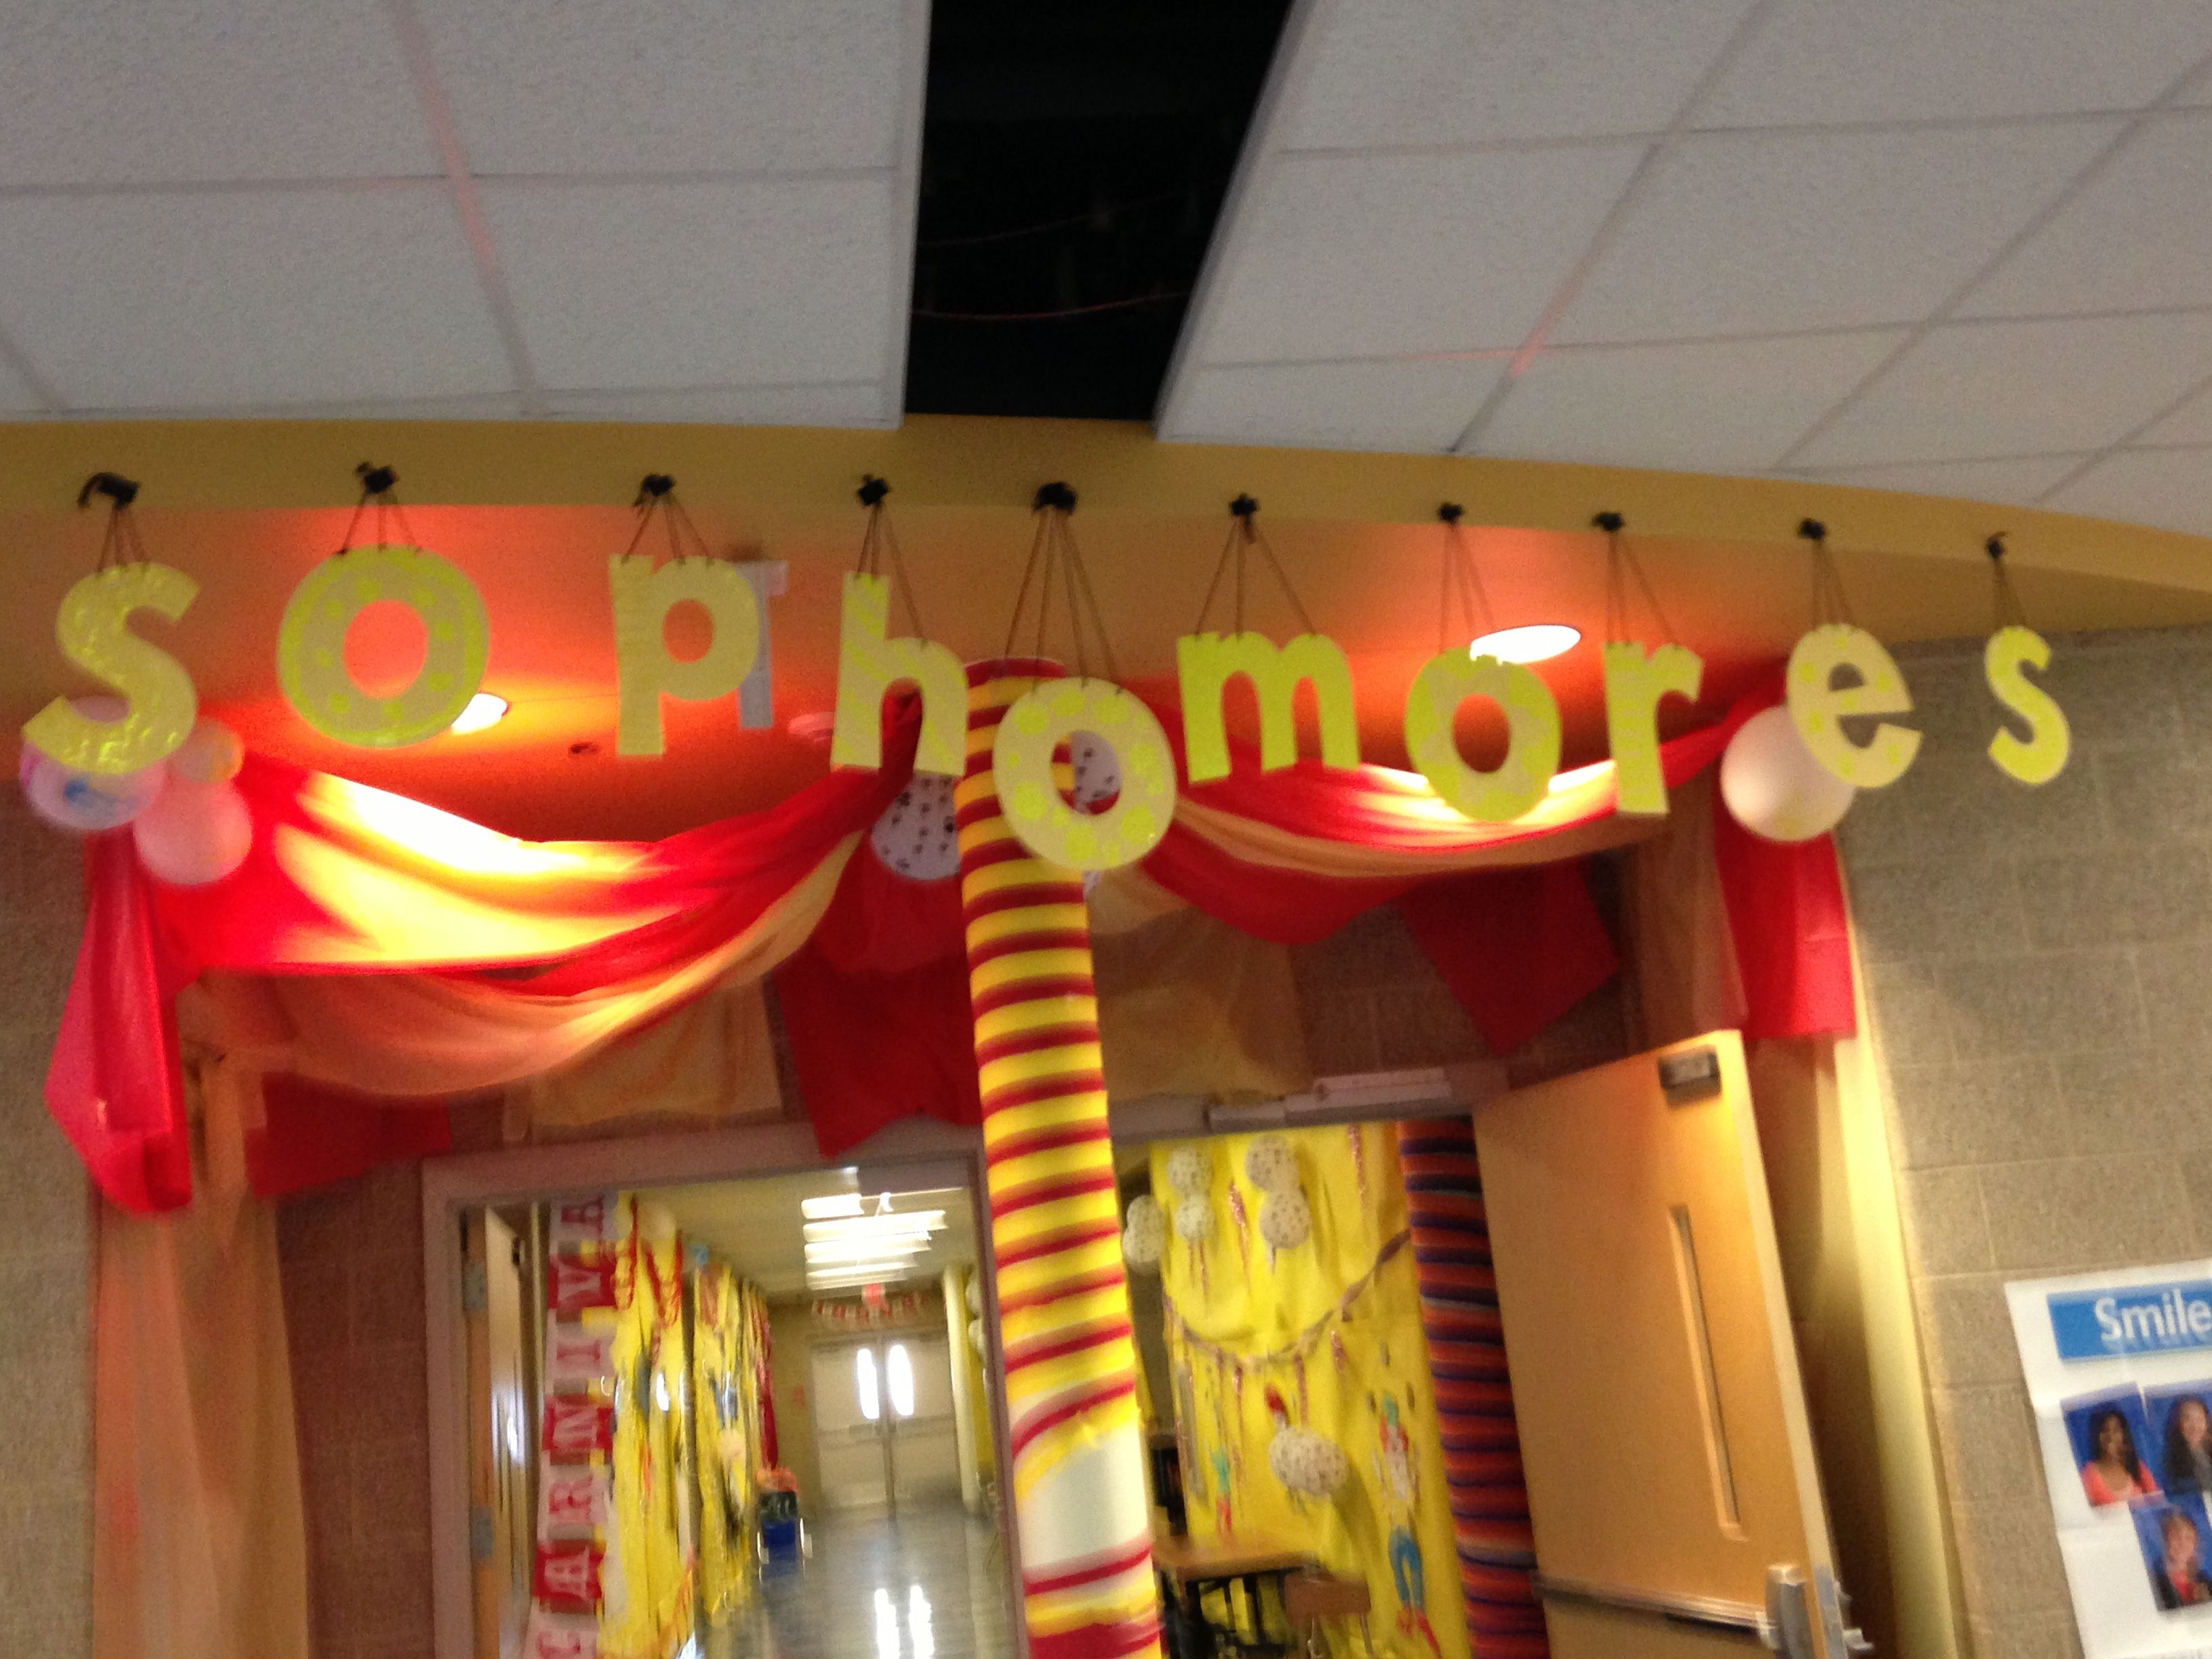 Sophomore Class Hallway For Circus Theme Homecoming Decorations